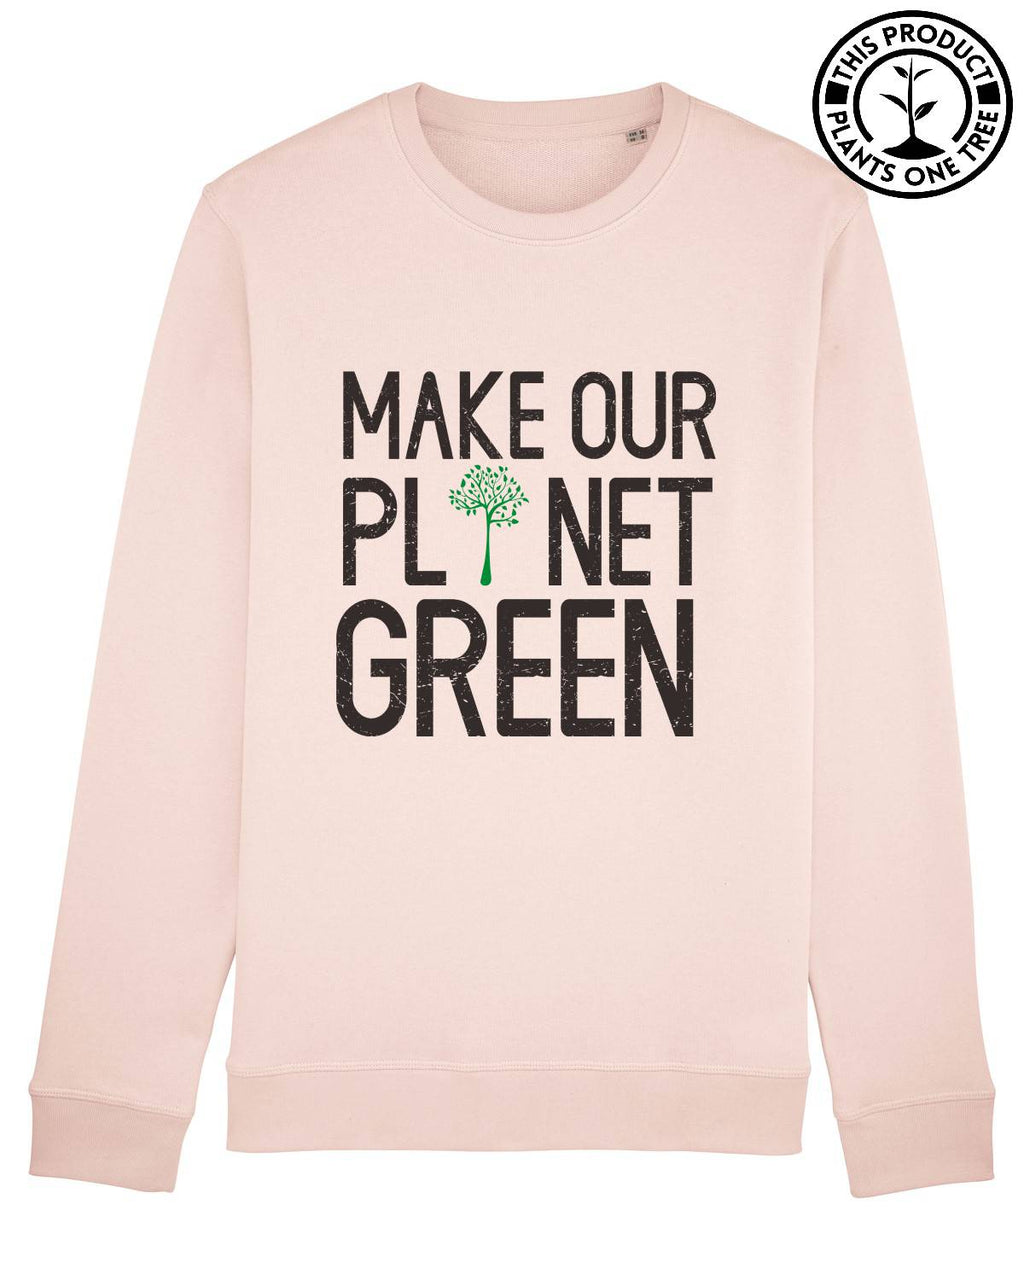 Green Planet Unisex Sweatshirt